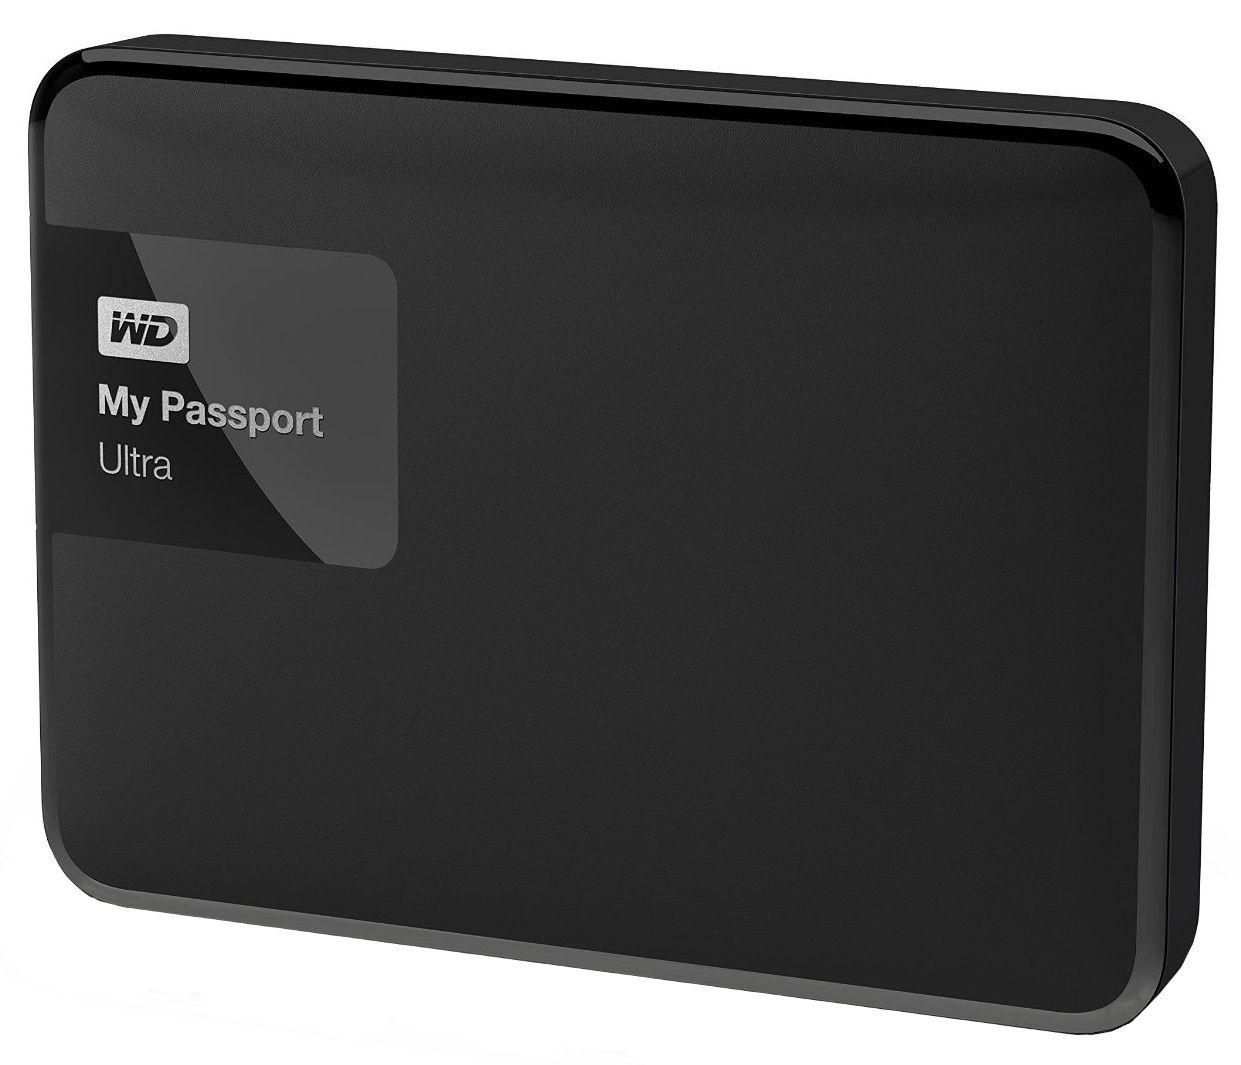 Western Digital WD My passport Ultra 500GB black WDBWWM5000ABK